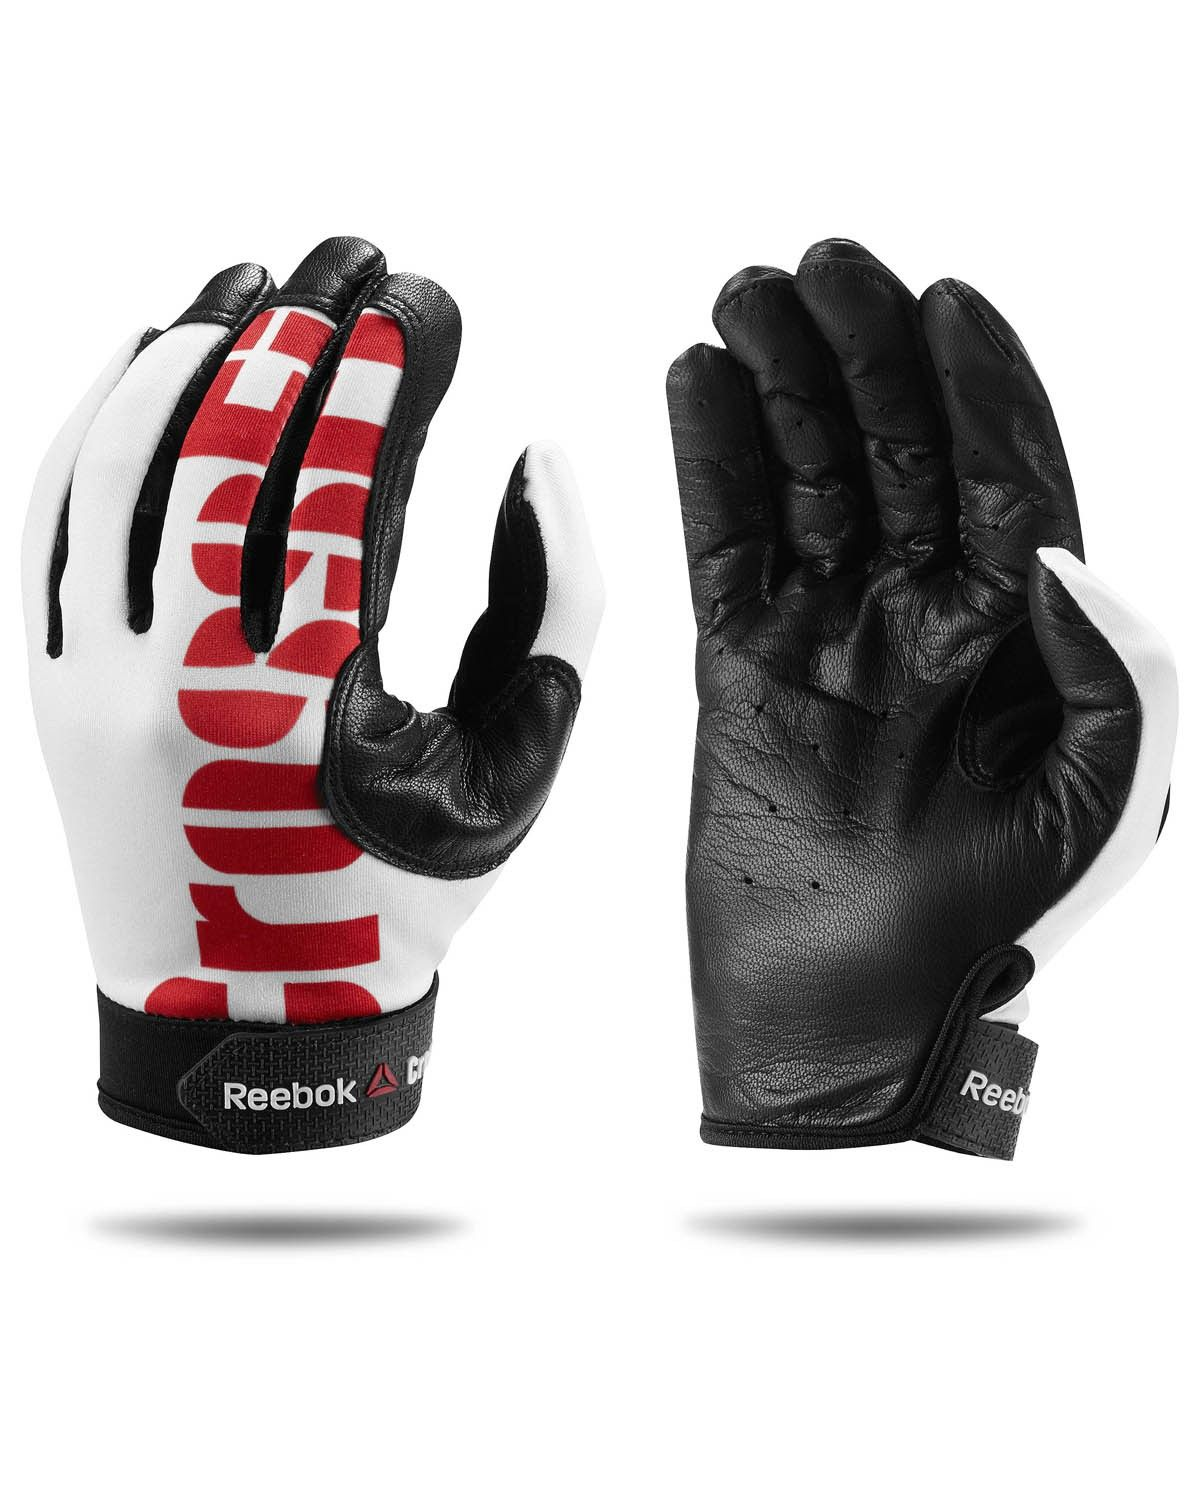 Crossfit Hq Store Men S Reebok Crossfit Gloves Ii